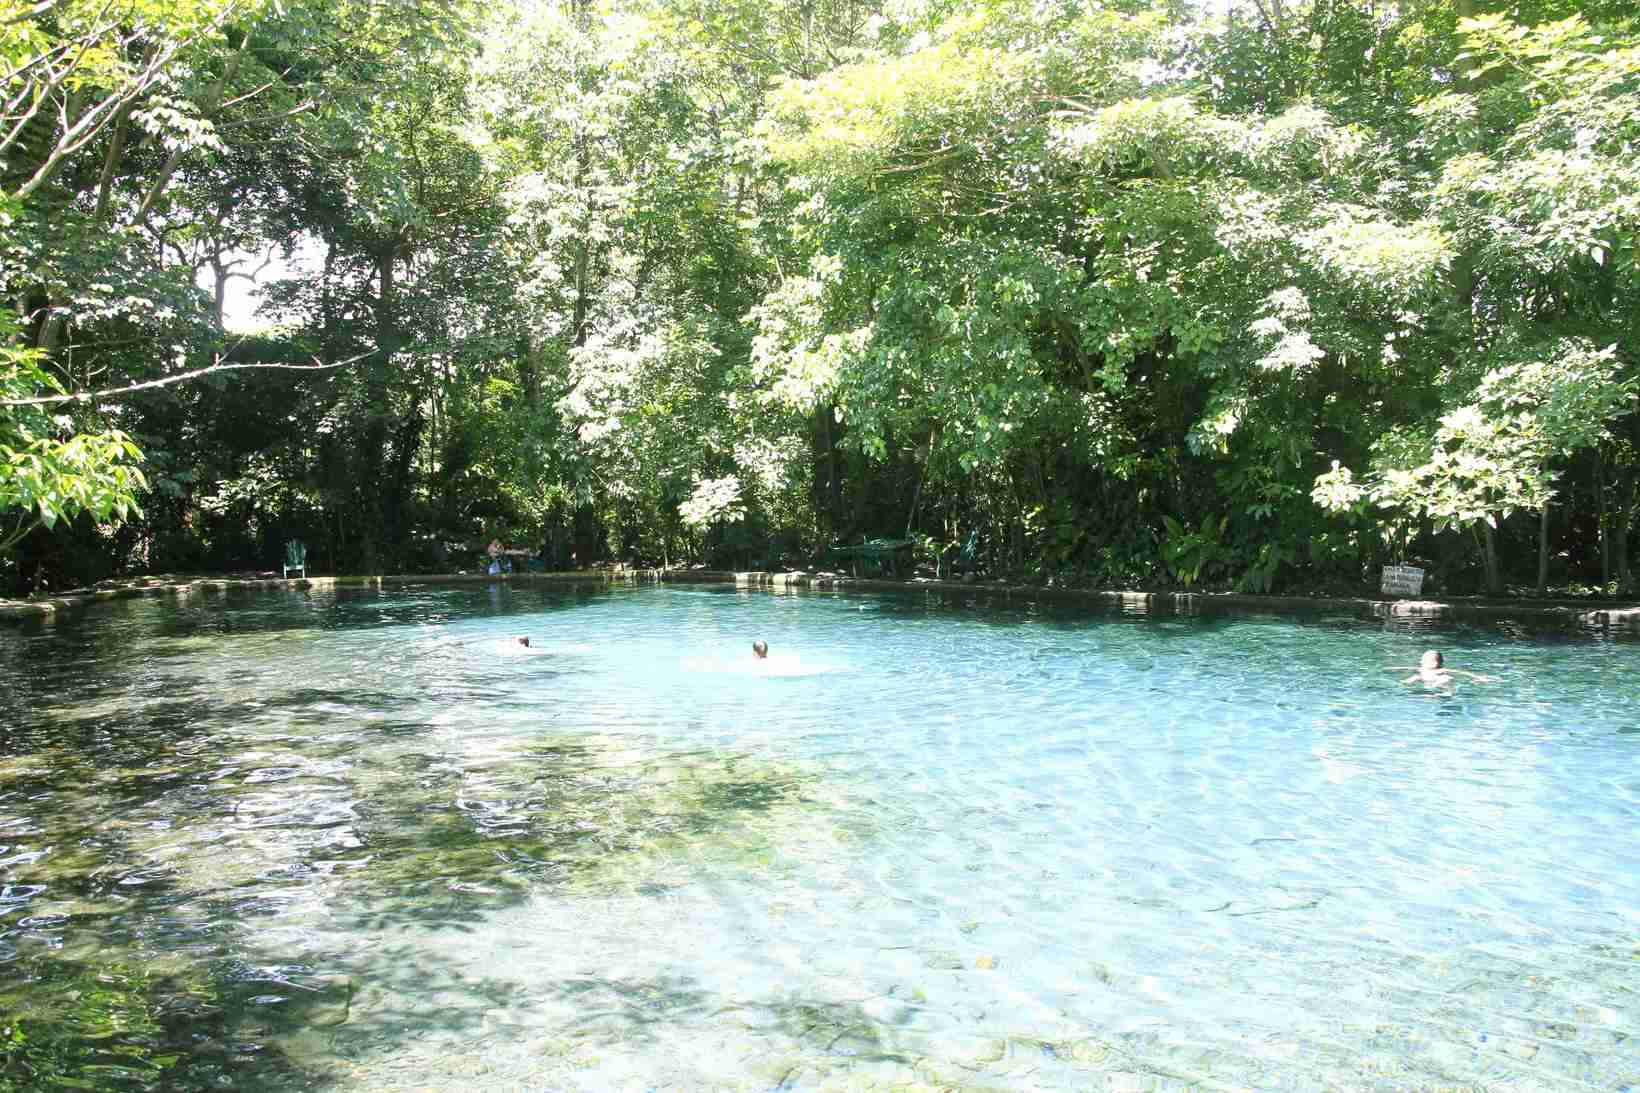 Ojo de agua natural cold spring water pool - 4km from Xalli